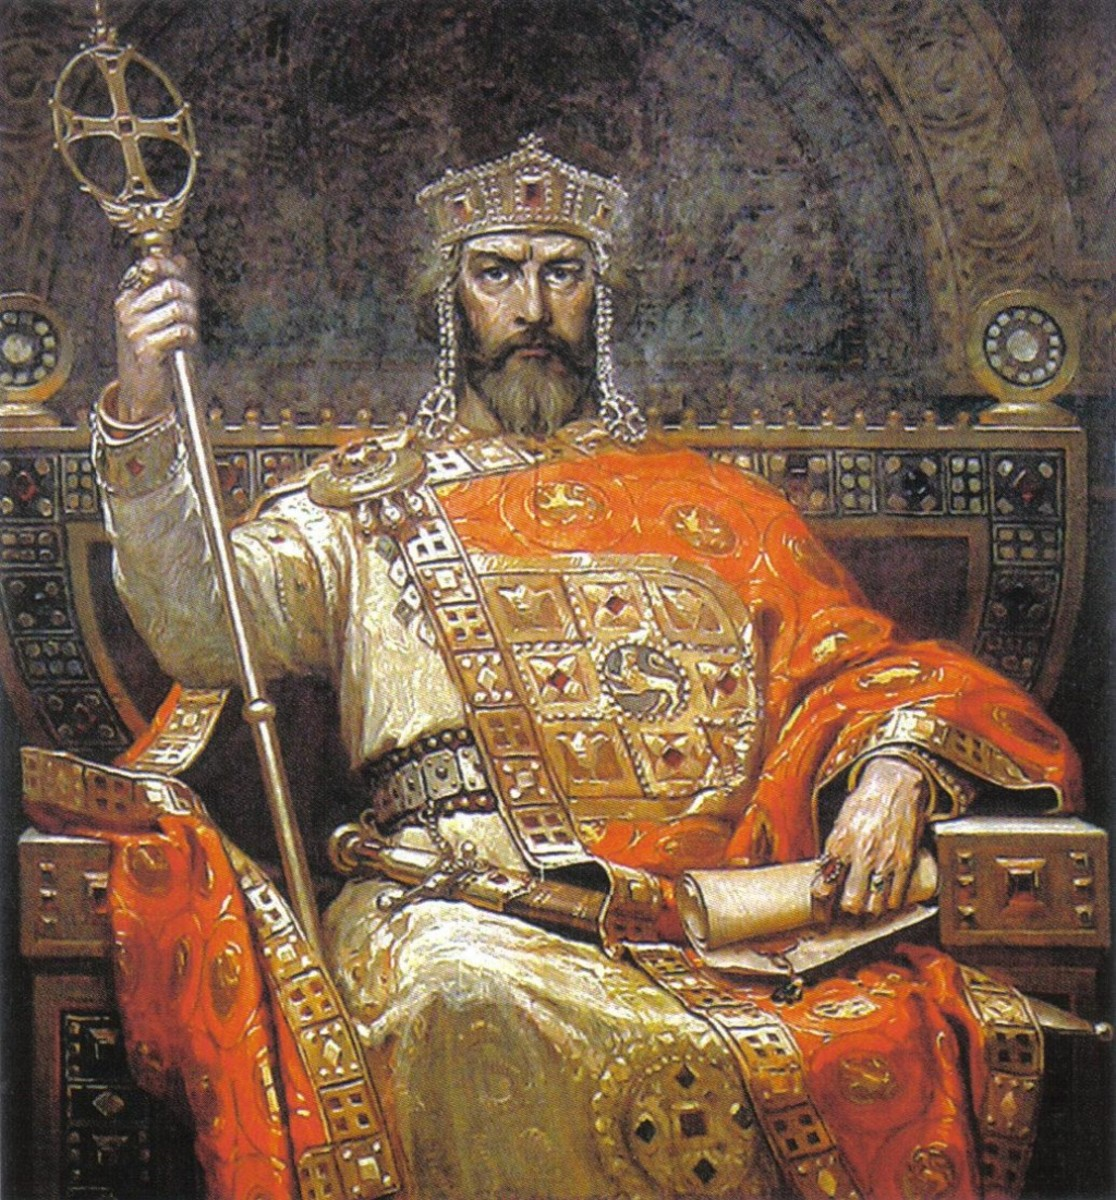 The emperor Nikophoras II Phokas, ruled  963-969 prior to Basil II